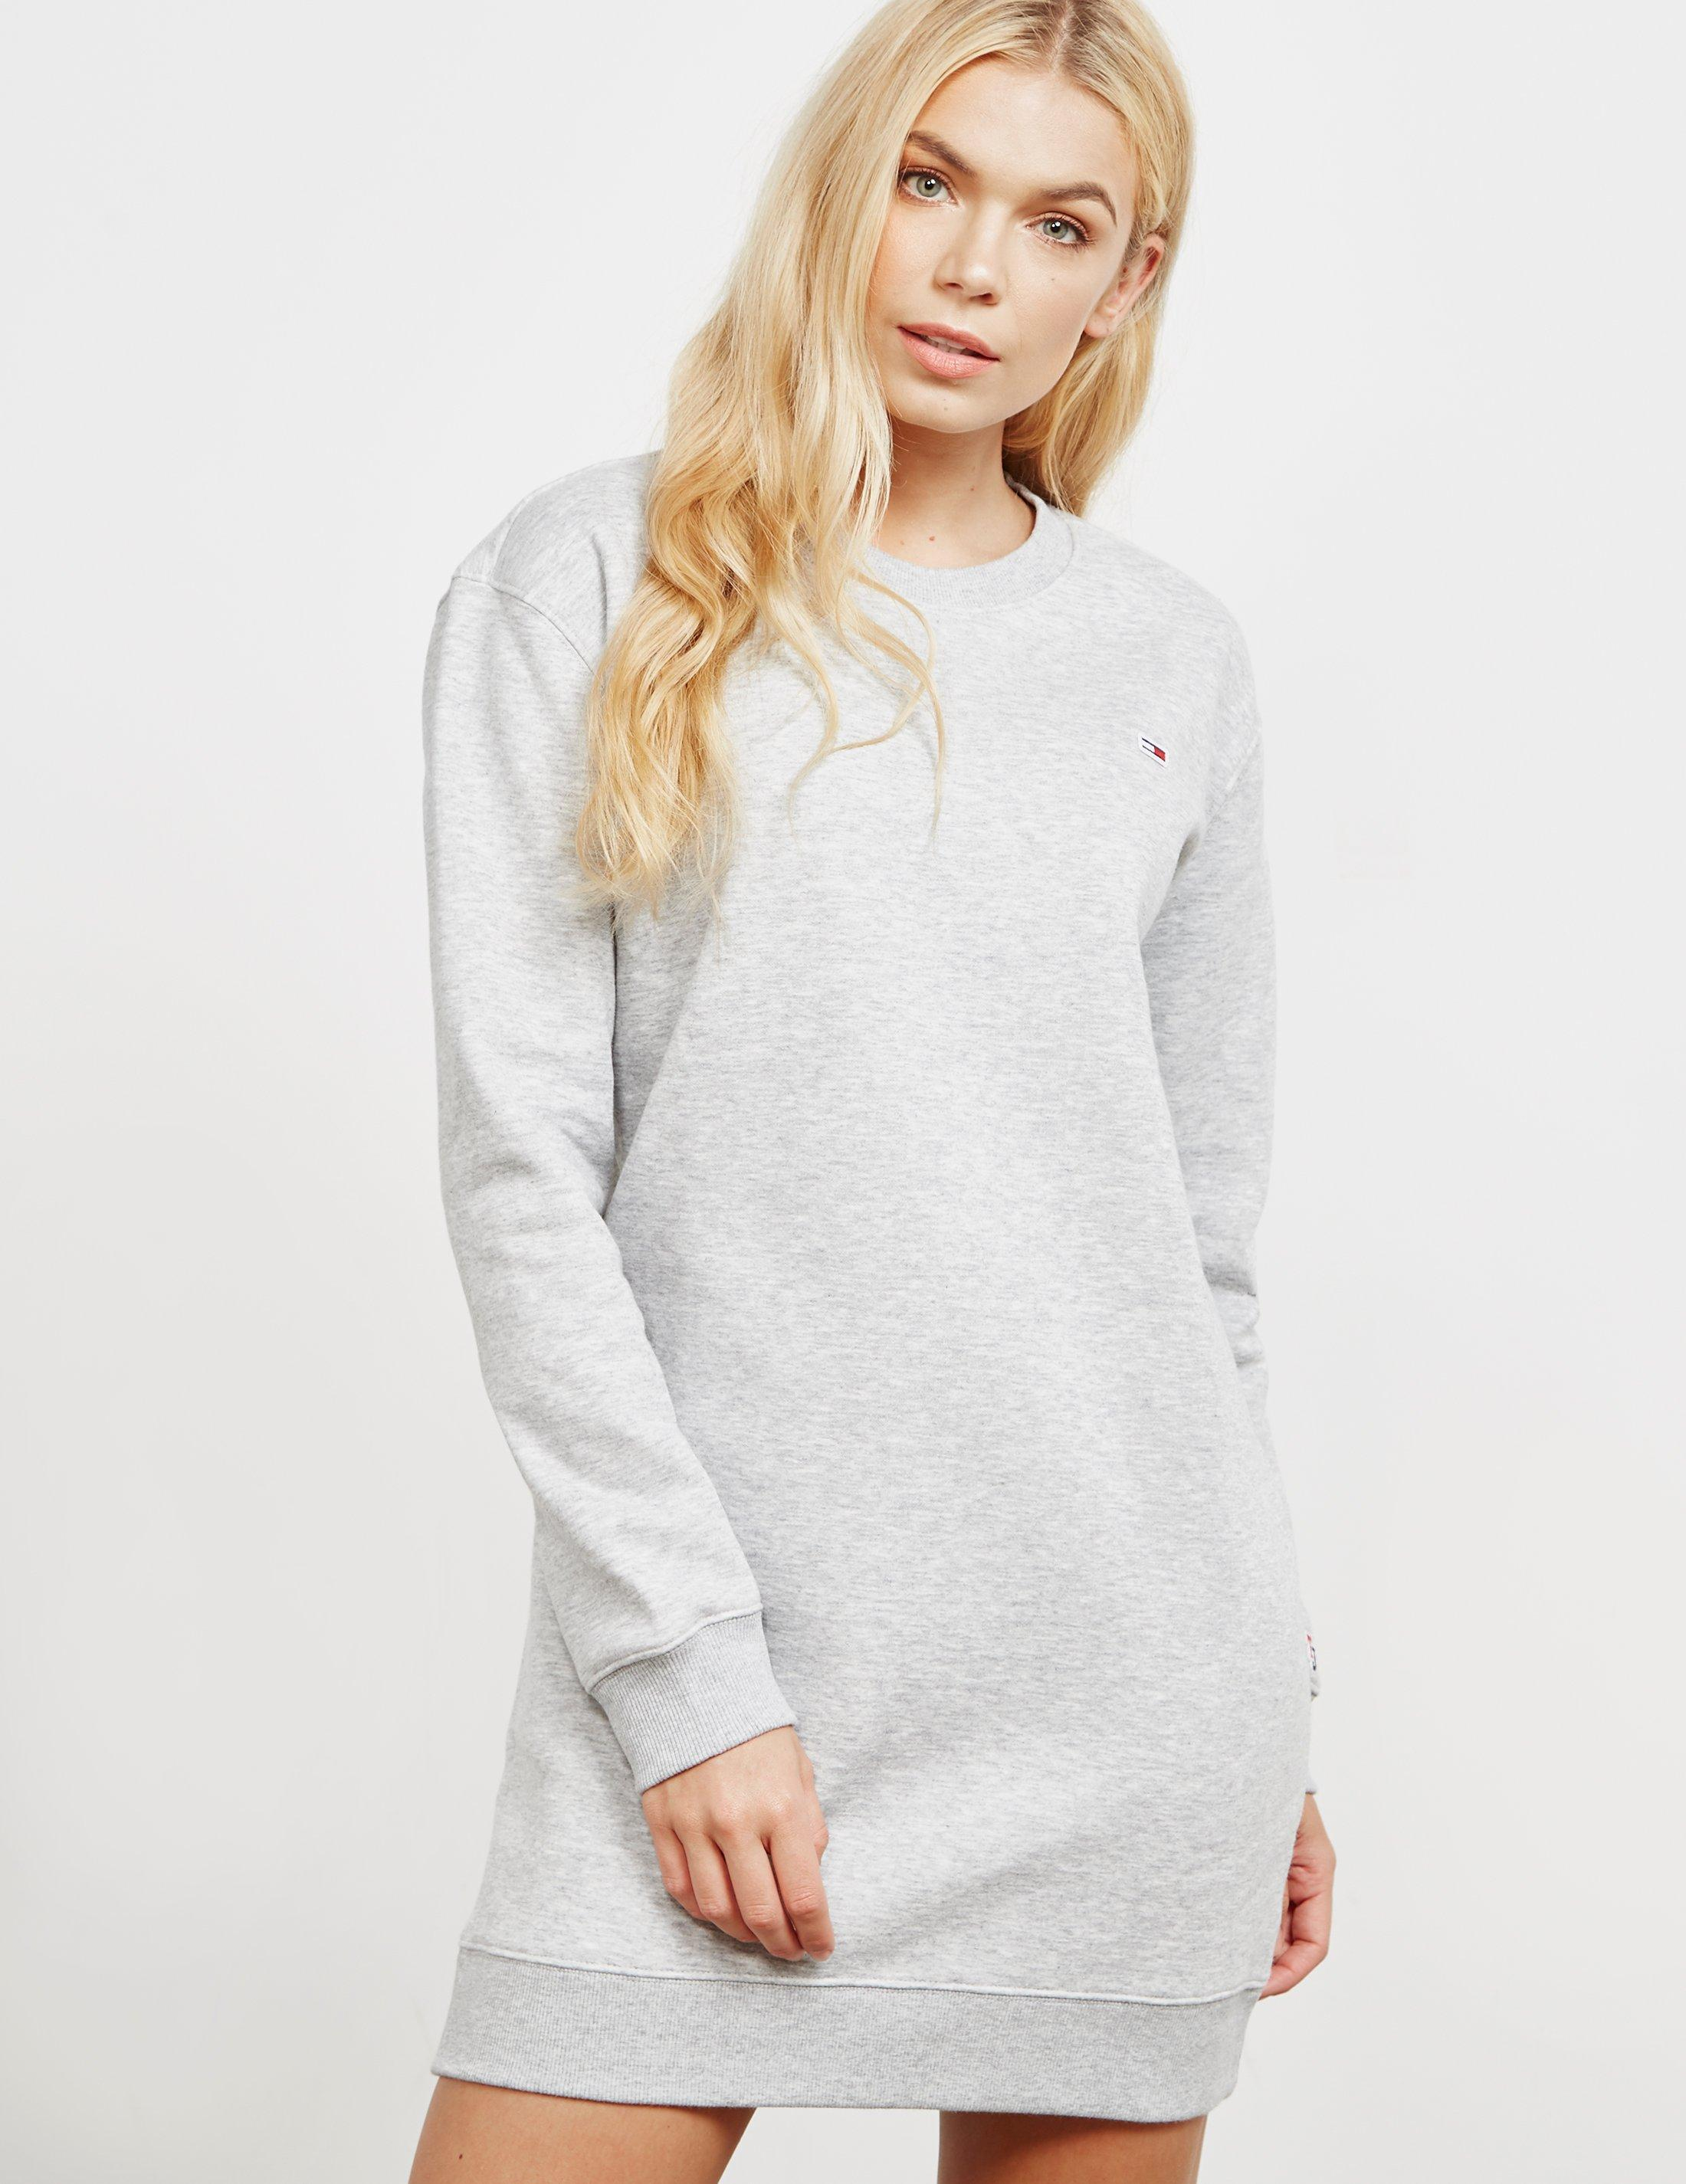 bc58ee5c00a Tommy Hilfiger Womens Classic Sweatshirt Dress - Online Exclusive ...